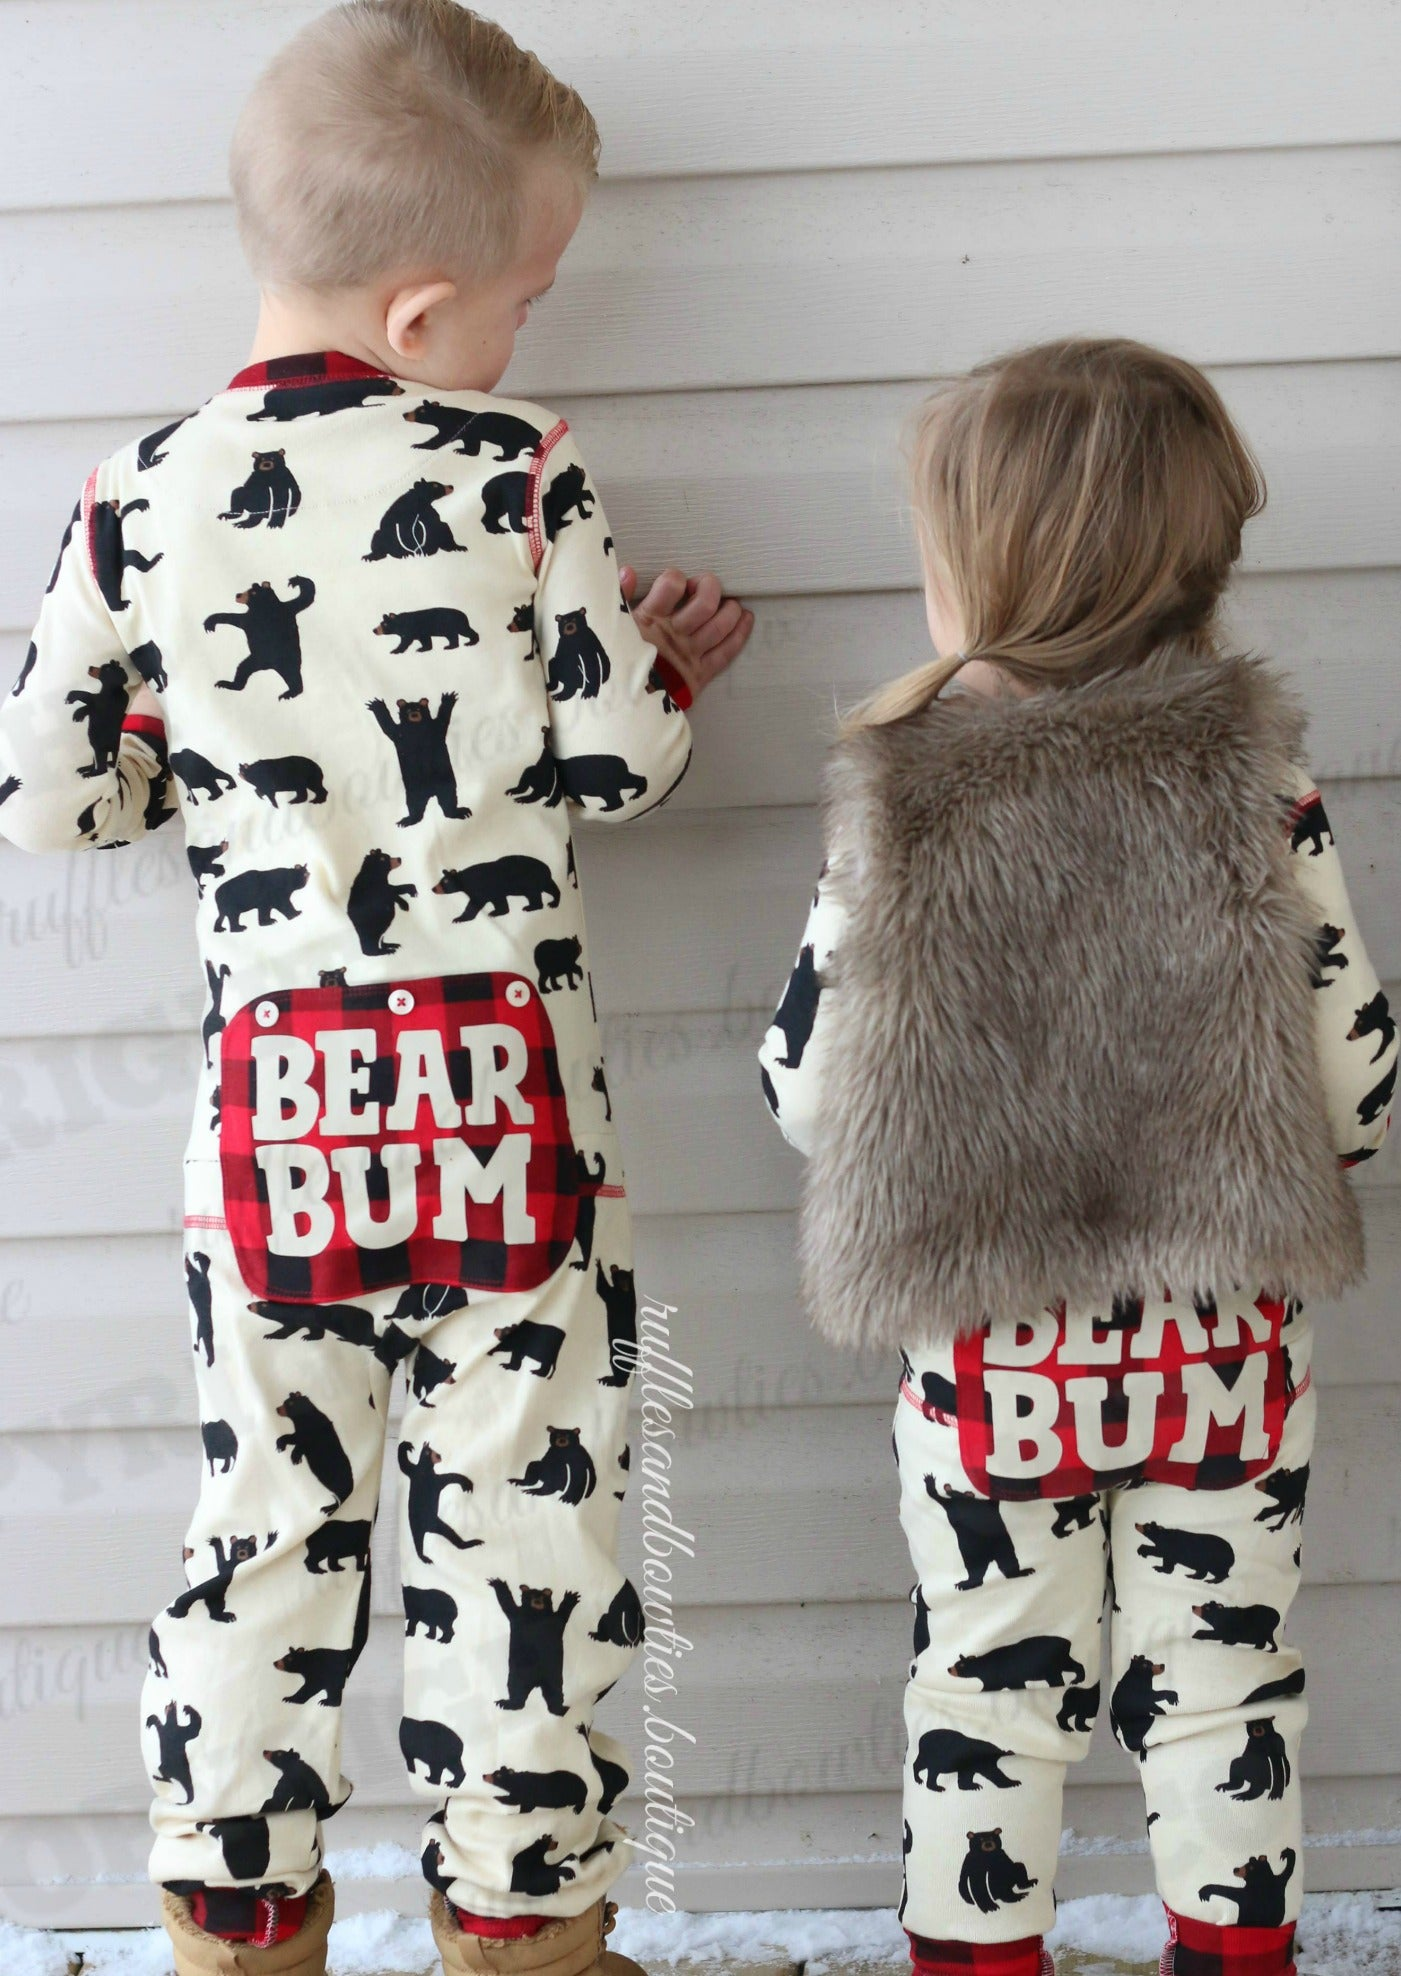 black bear and buffalo plaid bear bum family matching onesies longjohns union suits by hatley